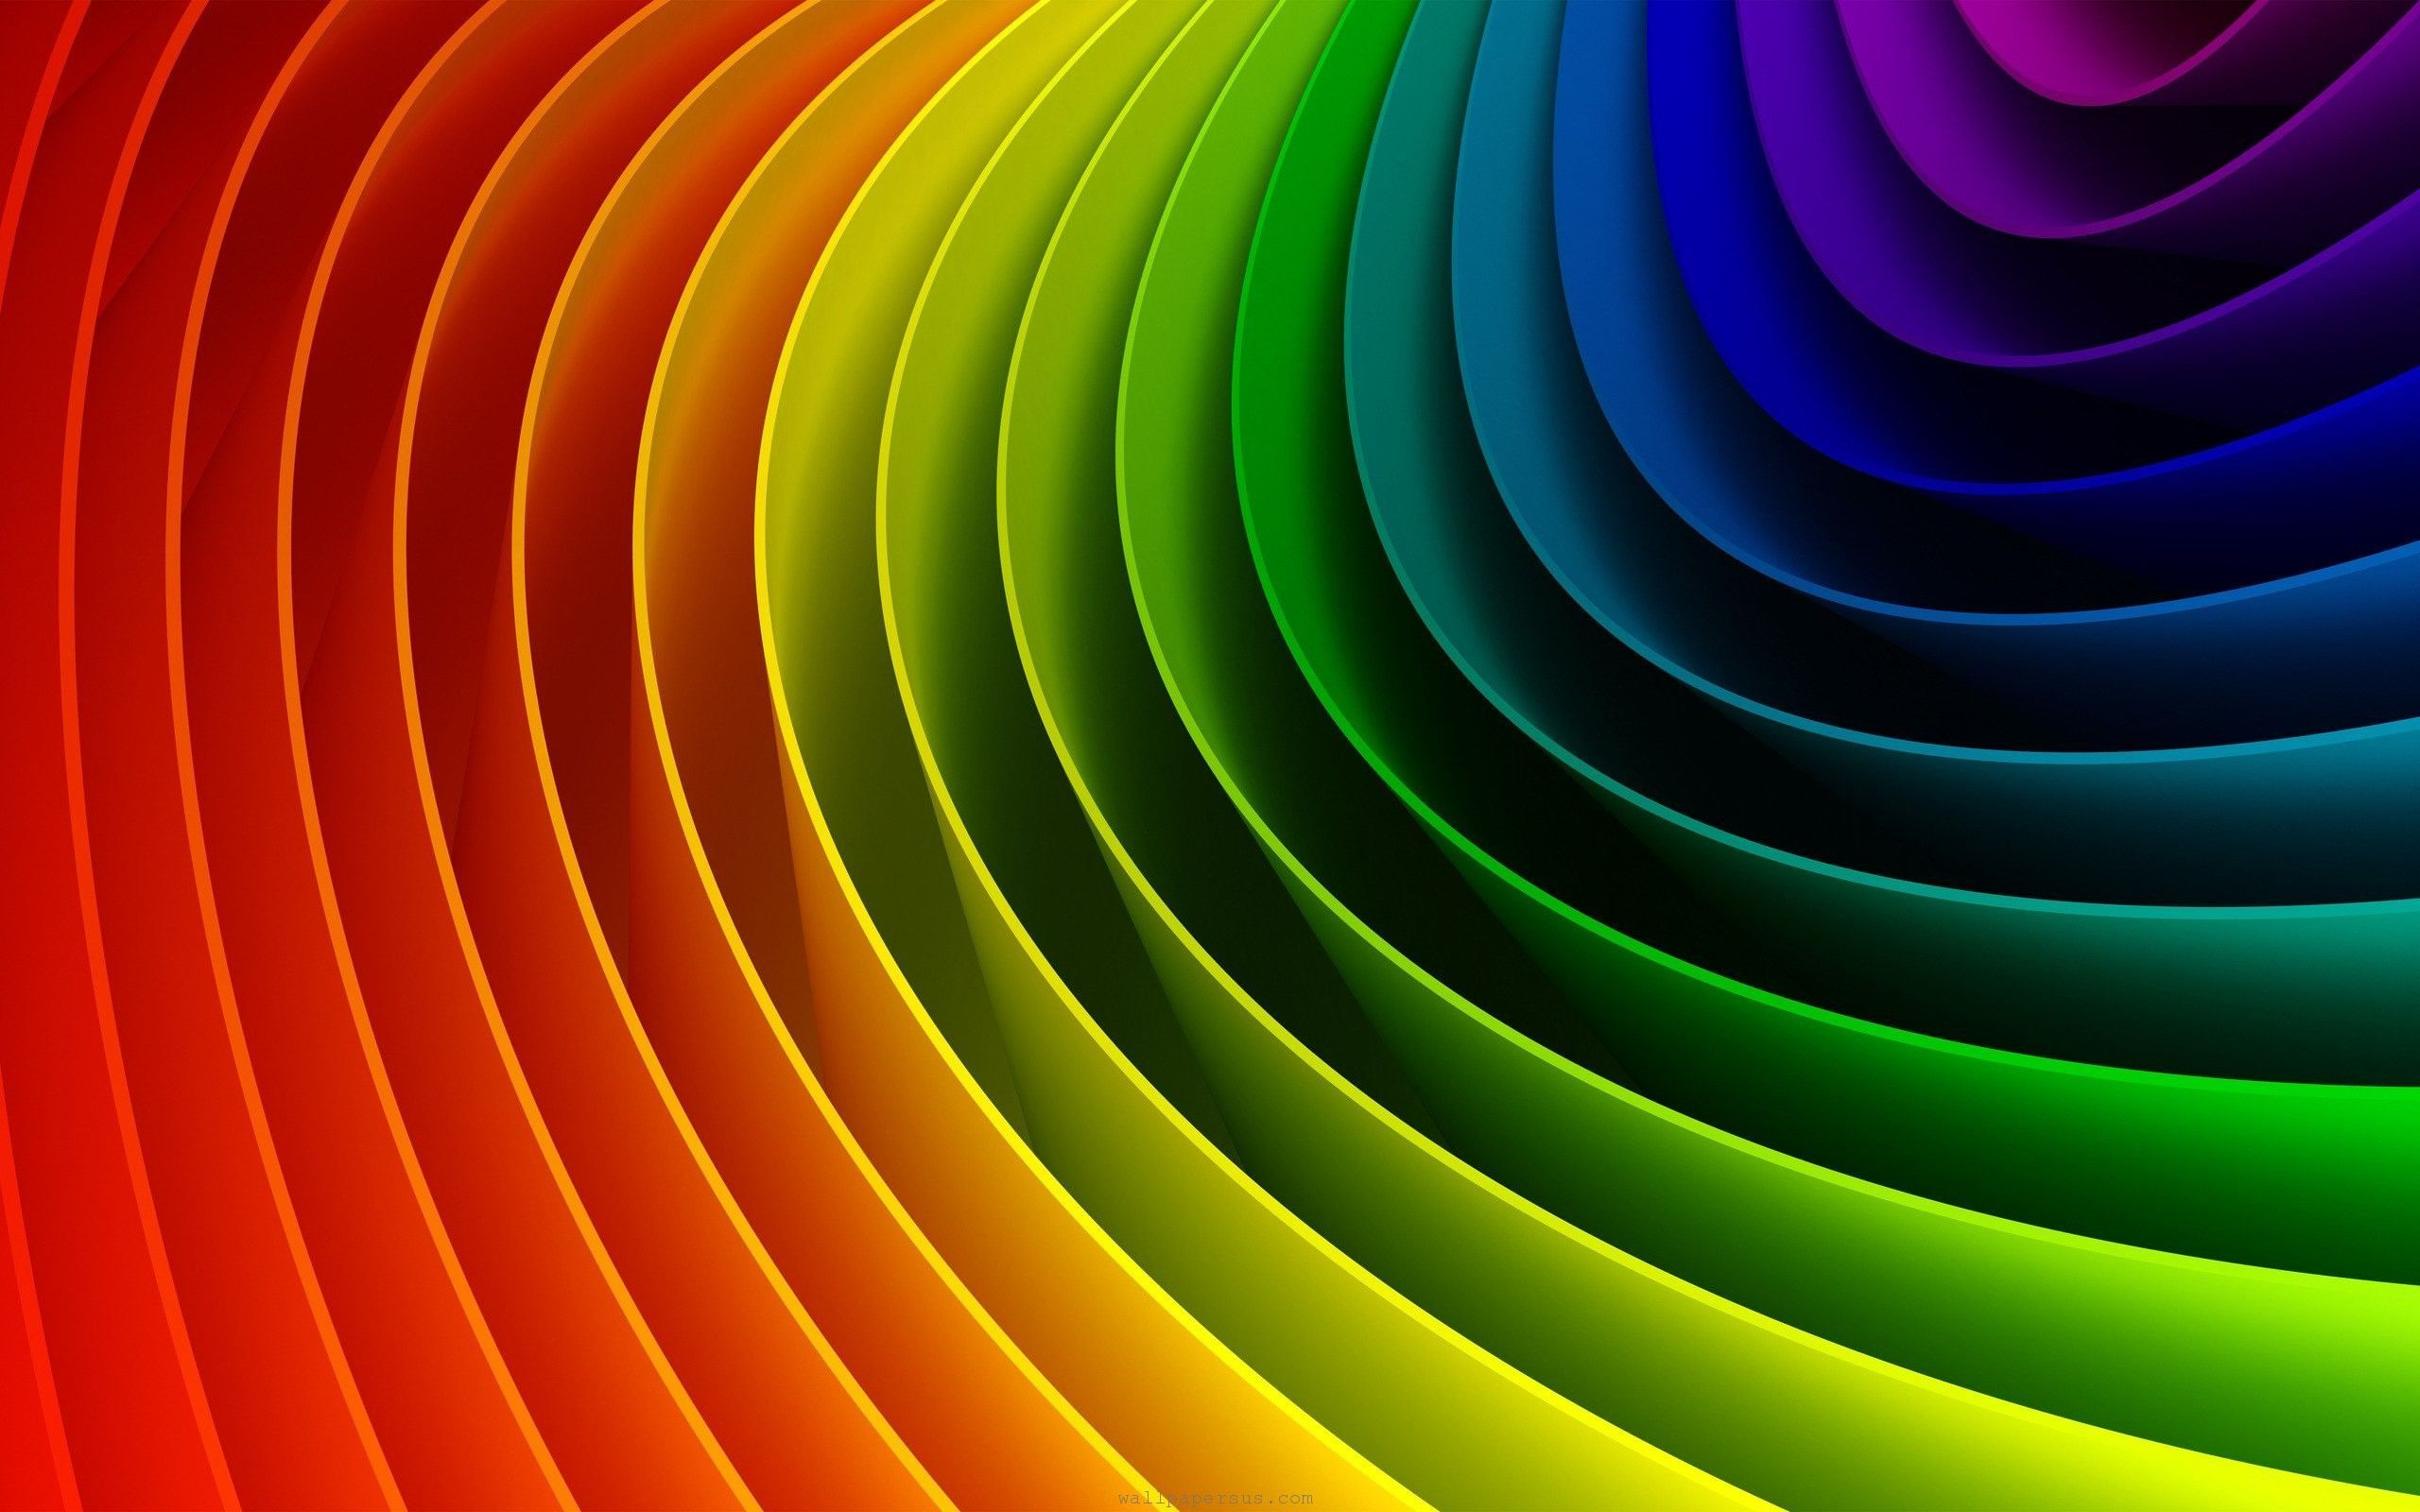 2560x1600 Wallpaper Abstract 3D Art   3D Abstract Colorful Wallpapers ...